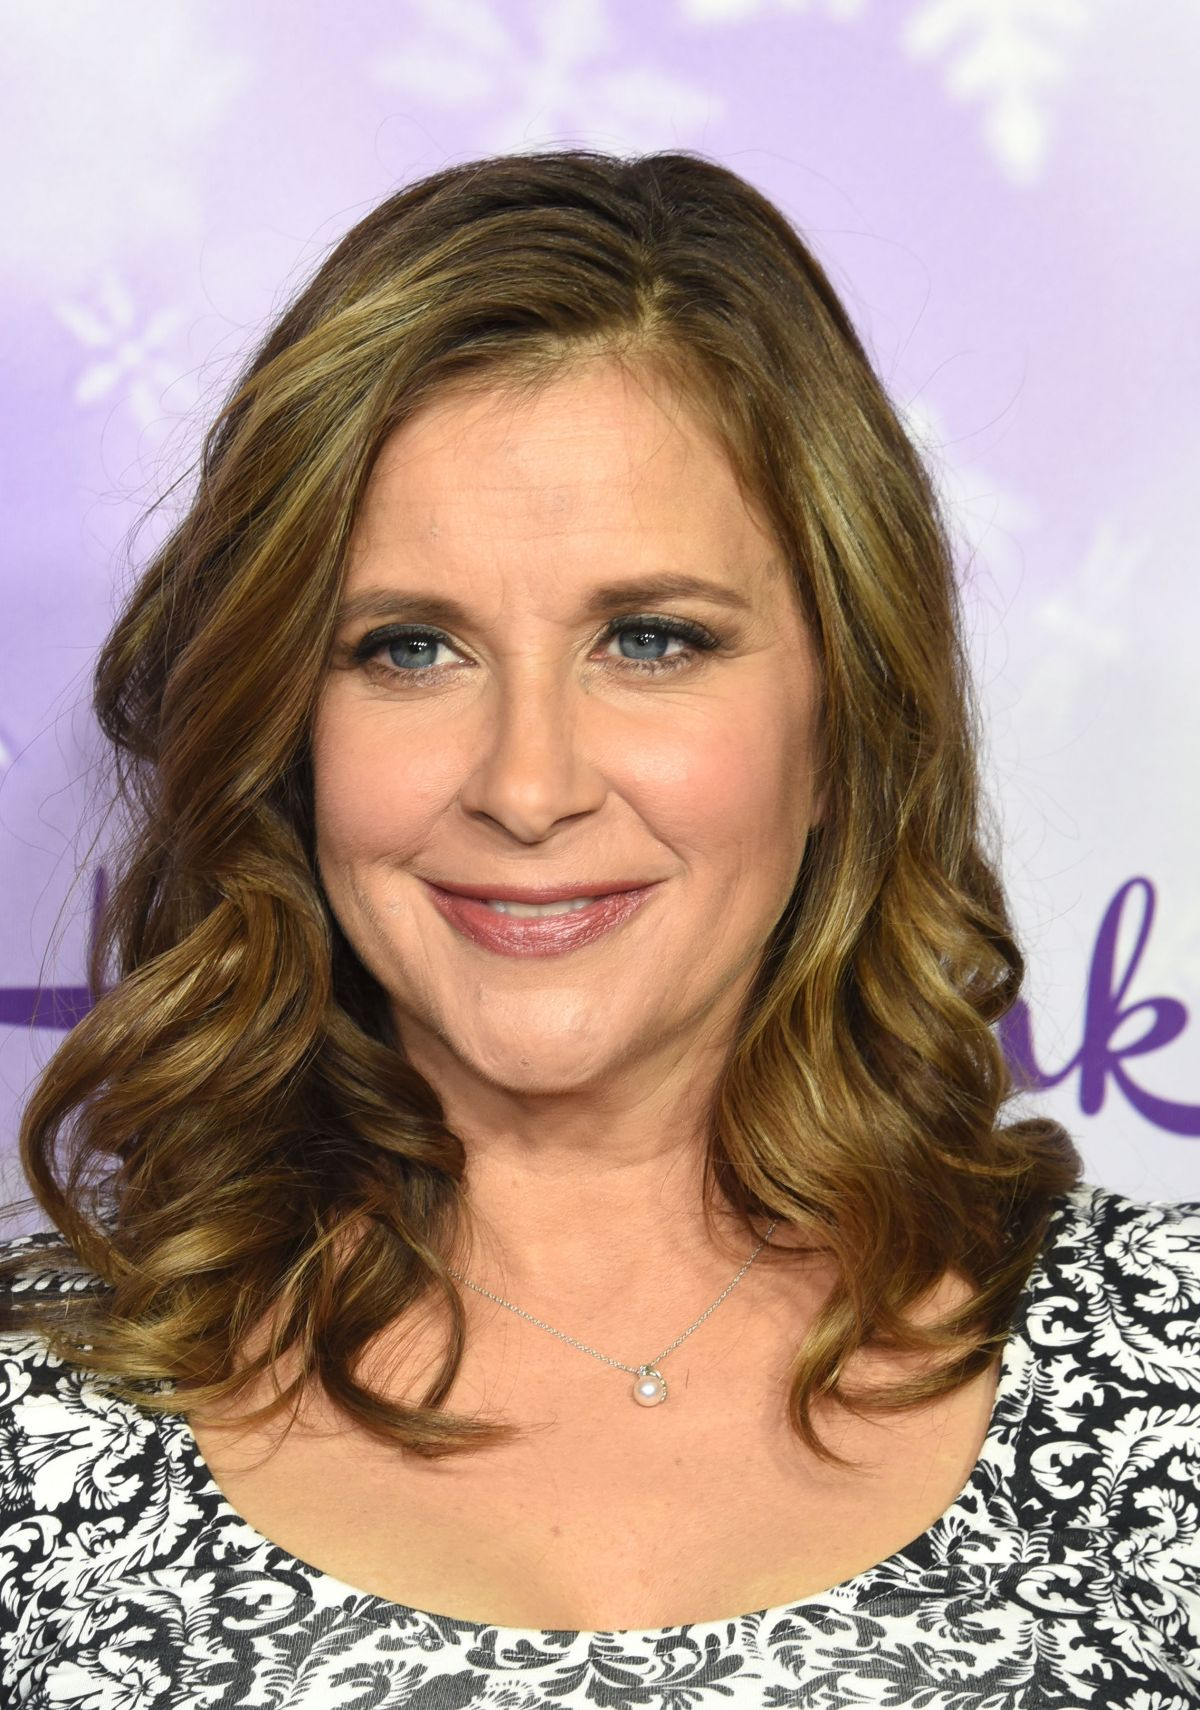 Pregnant KELLIE MARTIN at Hallmark Channel Party at 2016 Winter TCA Tour in Pasadena 01/08/2016